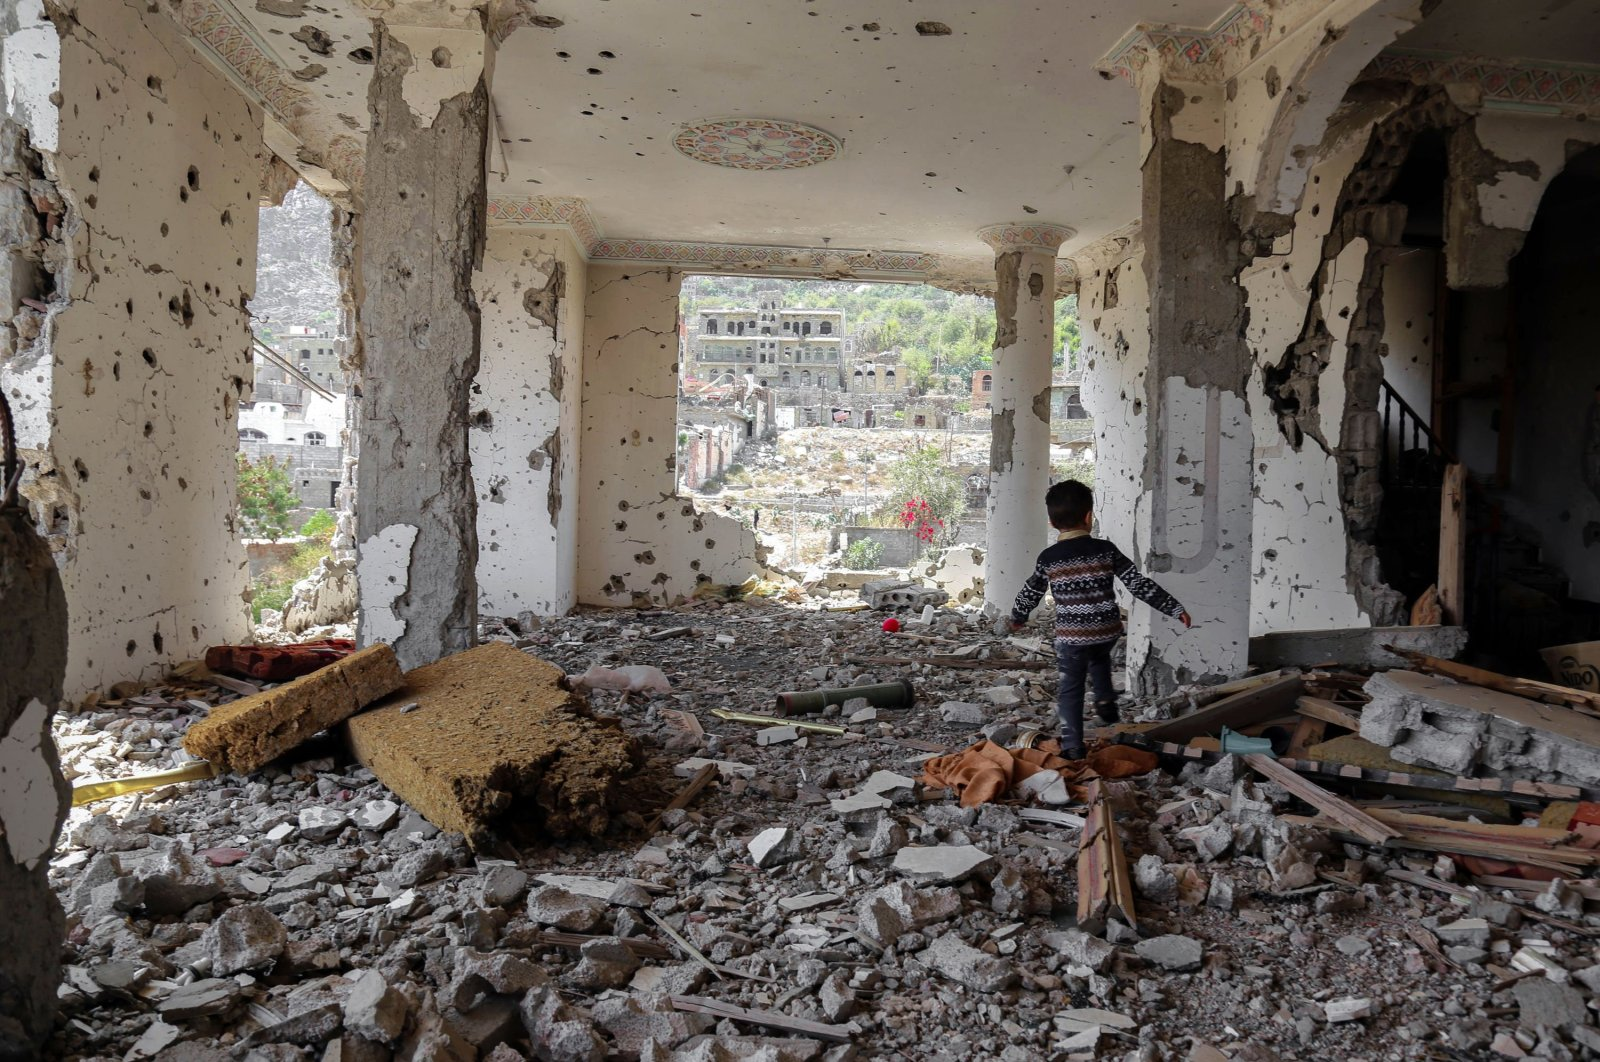 A Yemeni child walks in the rubble of a building that was destroyed in an airstrike in Taez, southern Yemen, March 18, 2018. (AFP Photo)